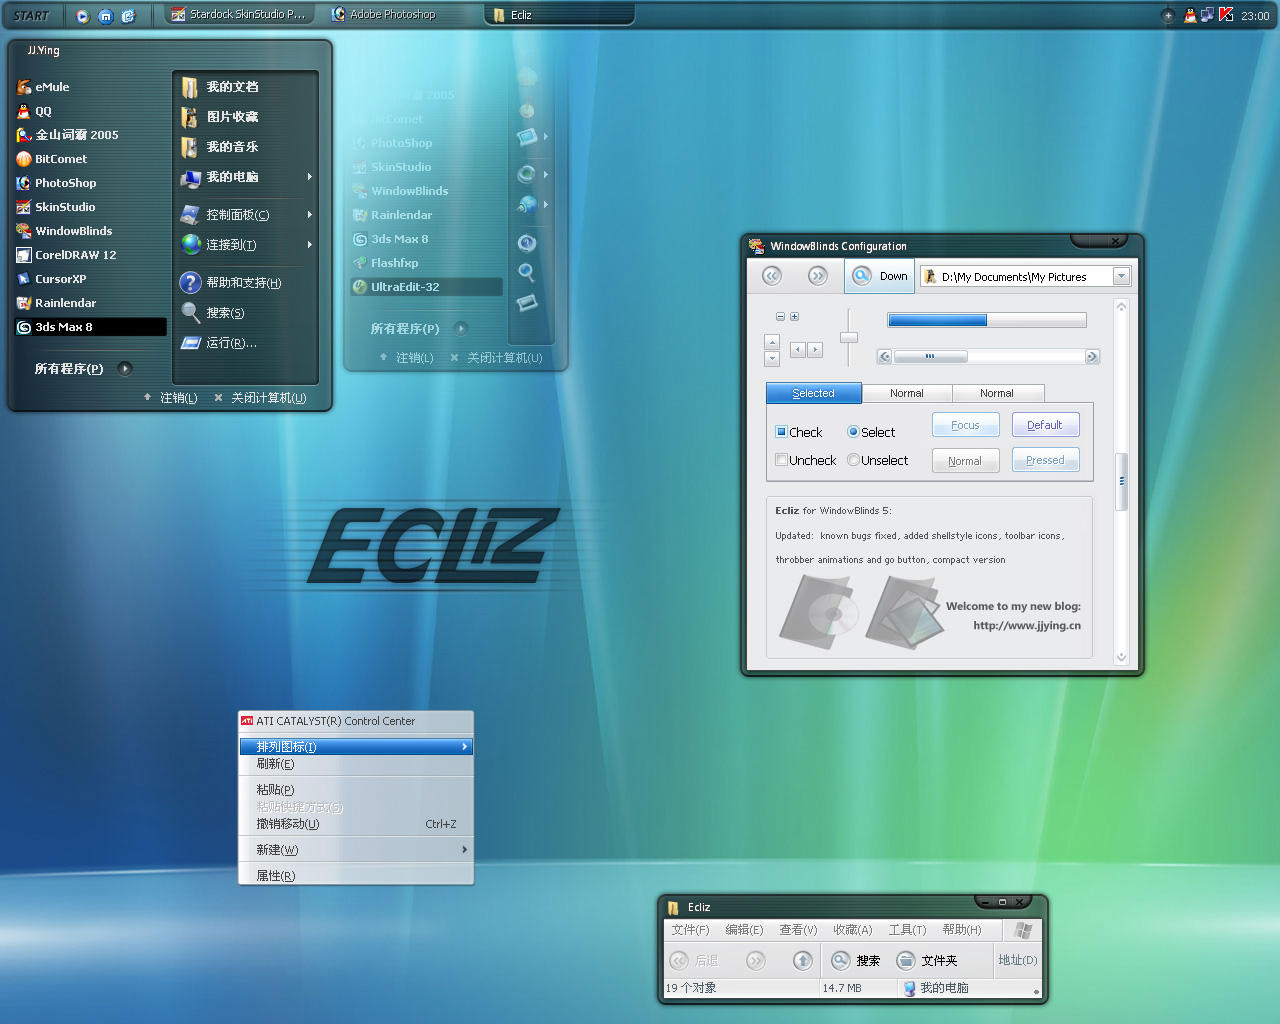 Ecliz 1.1 by JJ-Ying